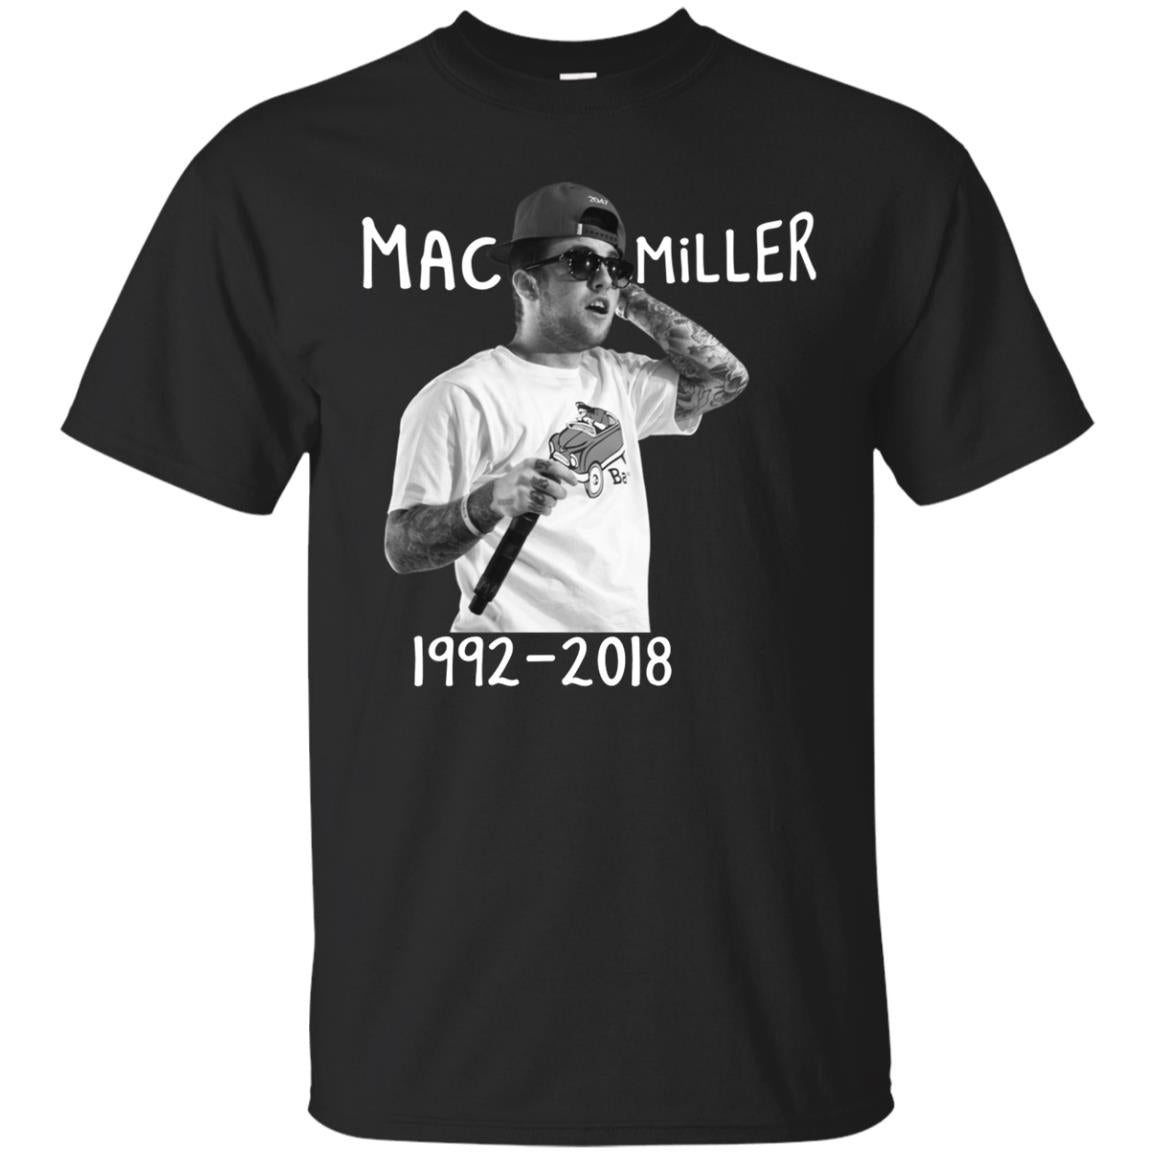 83e0a2cc6c132 You re viewing  Mac Miller Rip 1992 2018 Shirt  20.00 –  44.00